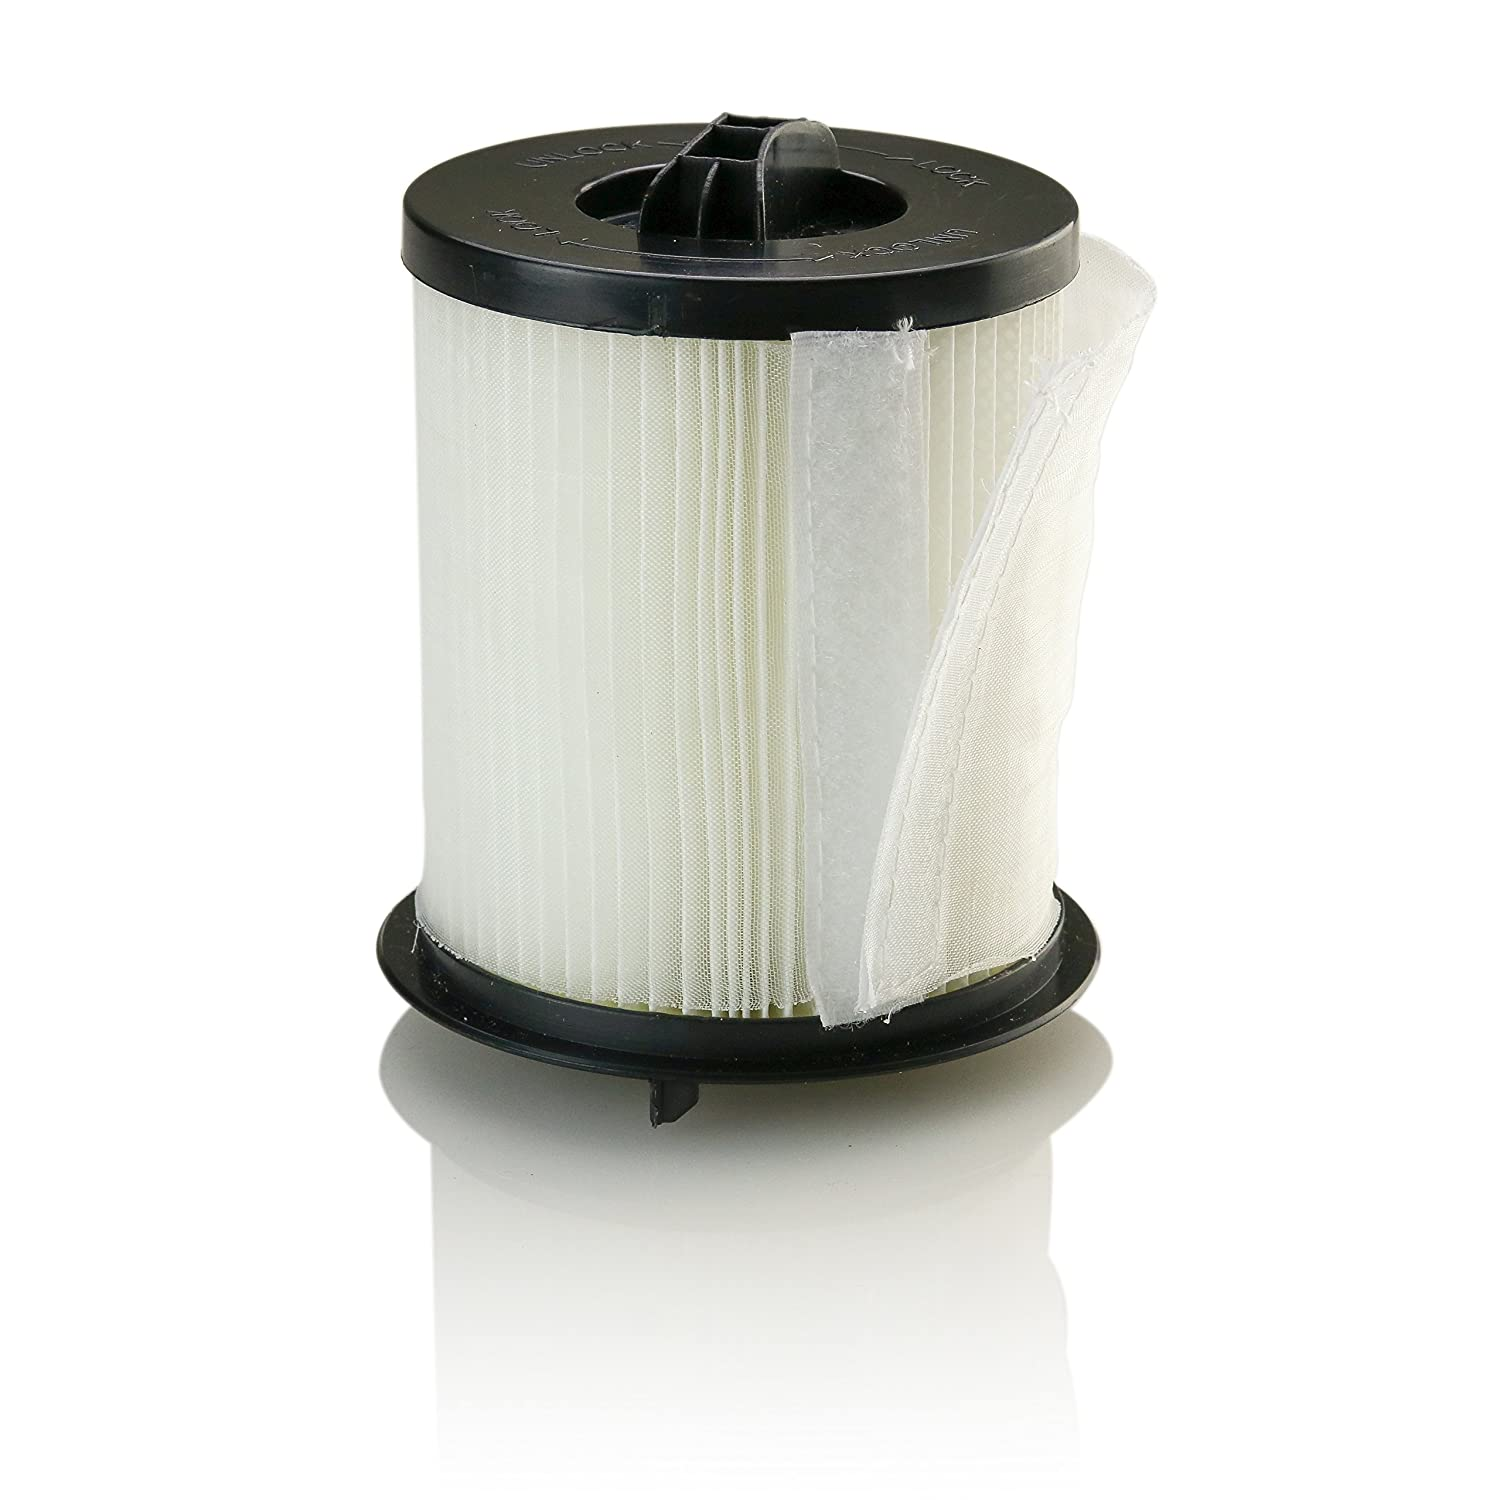 Combination Bristle Brush//Crevice Nozzle and Retractable Cord ST2000 Corded Ovente Bagless Canister Cyclonic Vacuum with HEPA Filter Featherlite Comes with Telescopic Wand